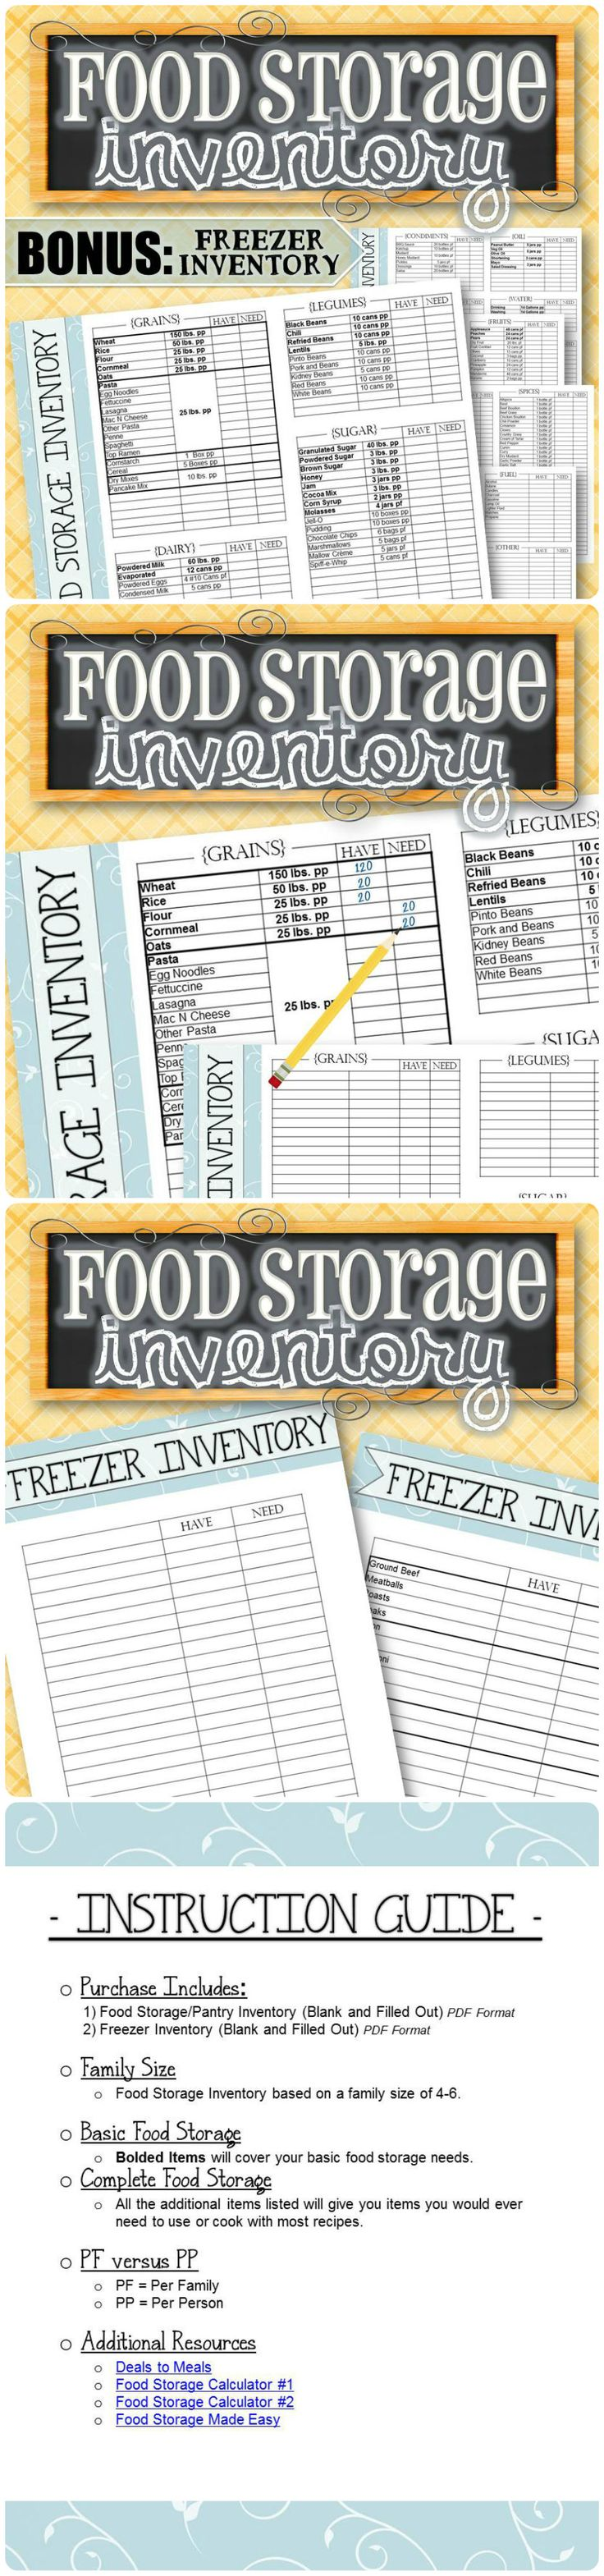 "Wanting to fill your pantry or stock up on food storage? These lists tell you what AND how much to purchase for each item! The NEED and WANT columns allow you to keep track of how much you have and mark what you need for easy ""at-a-glance"" shopping. The lists also include additional items such as toilet paper, shampoo, toothpaste, fuel items, etc. The simple solution for whether you're looking for just the basics or want a complete list of what to purchase for your home."